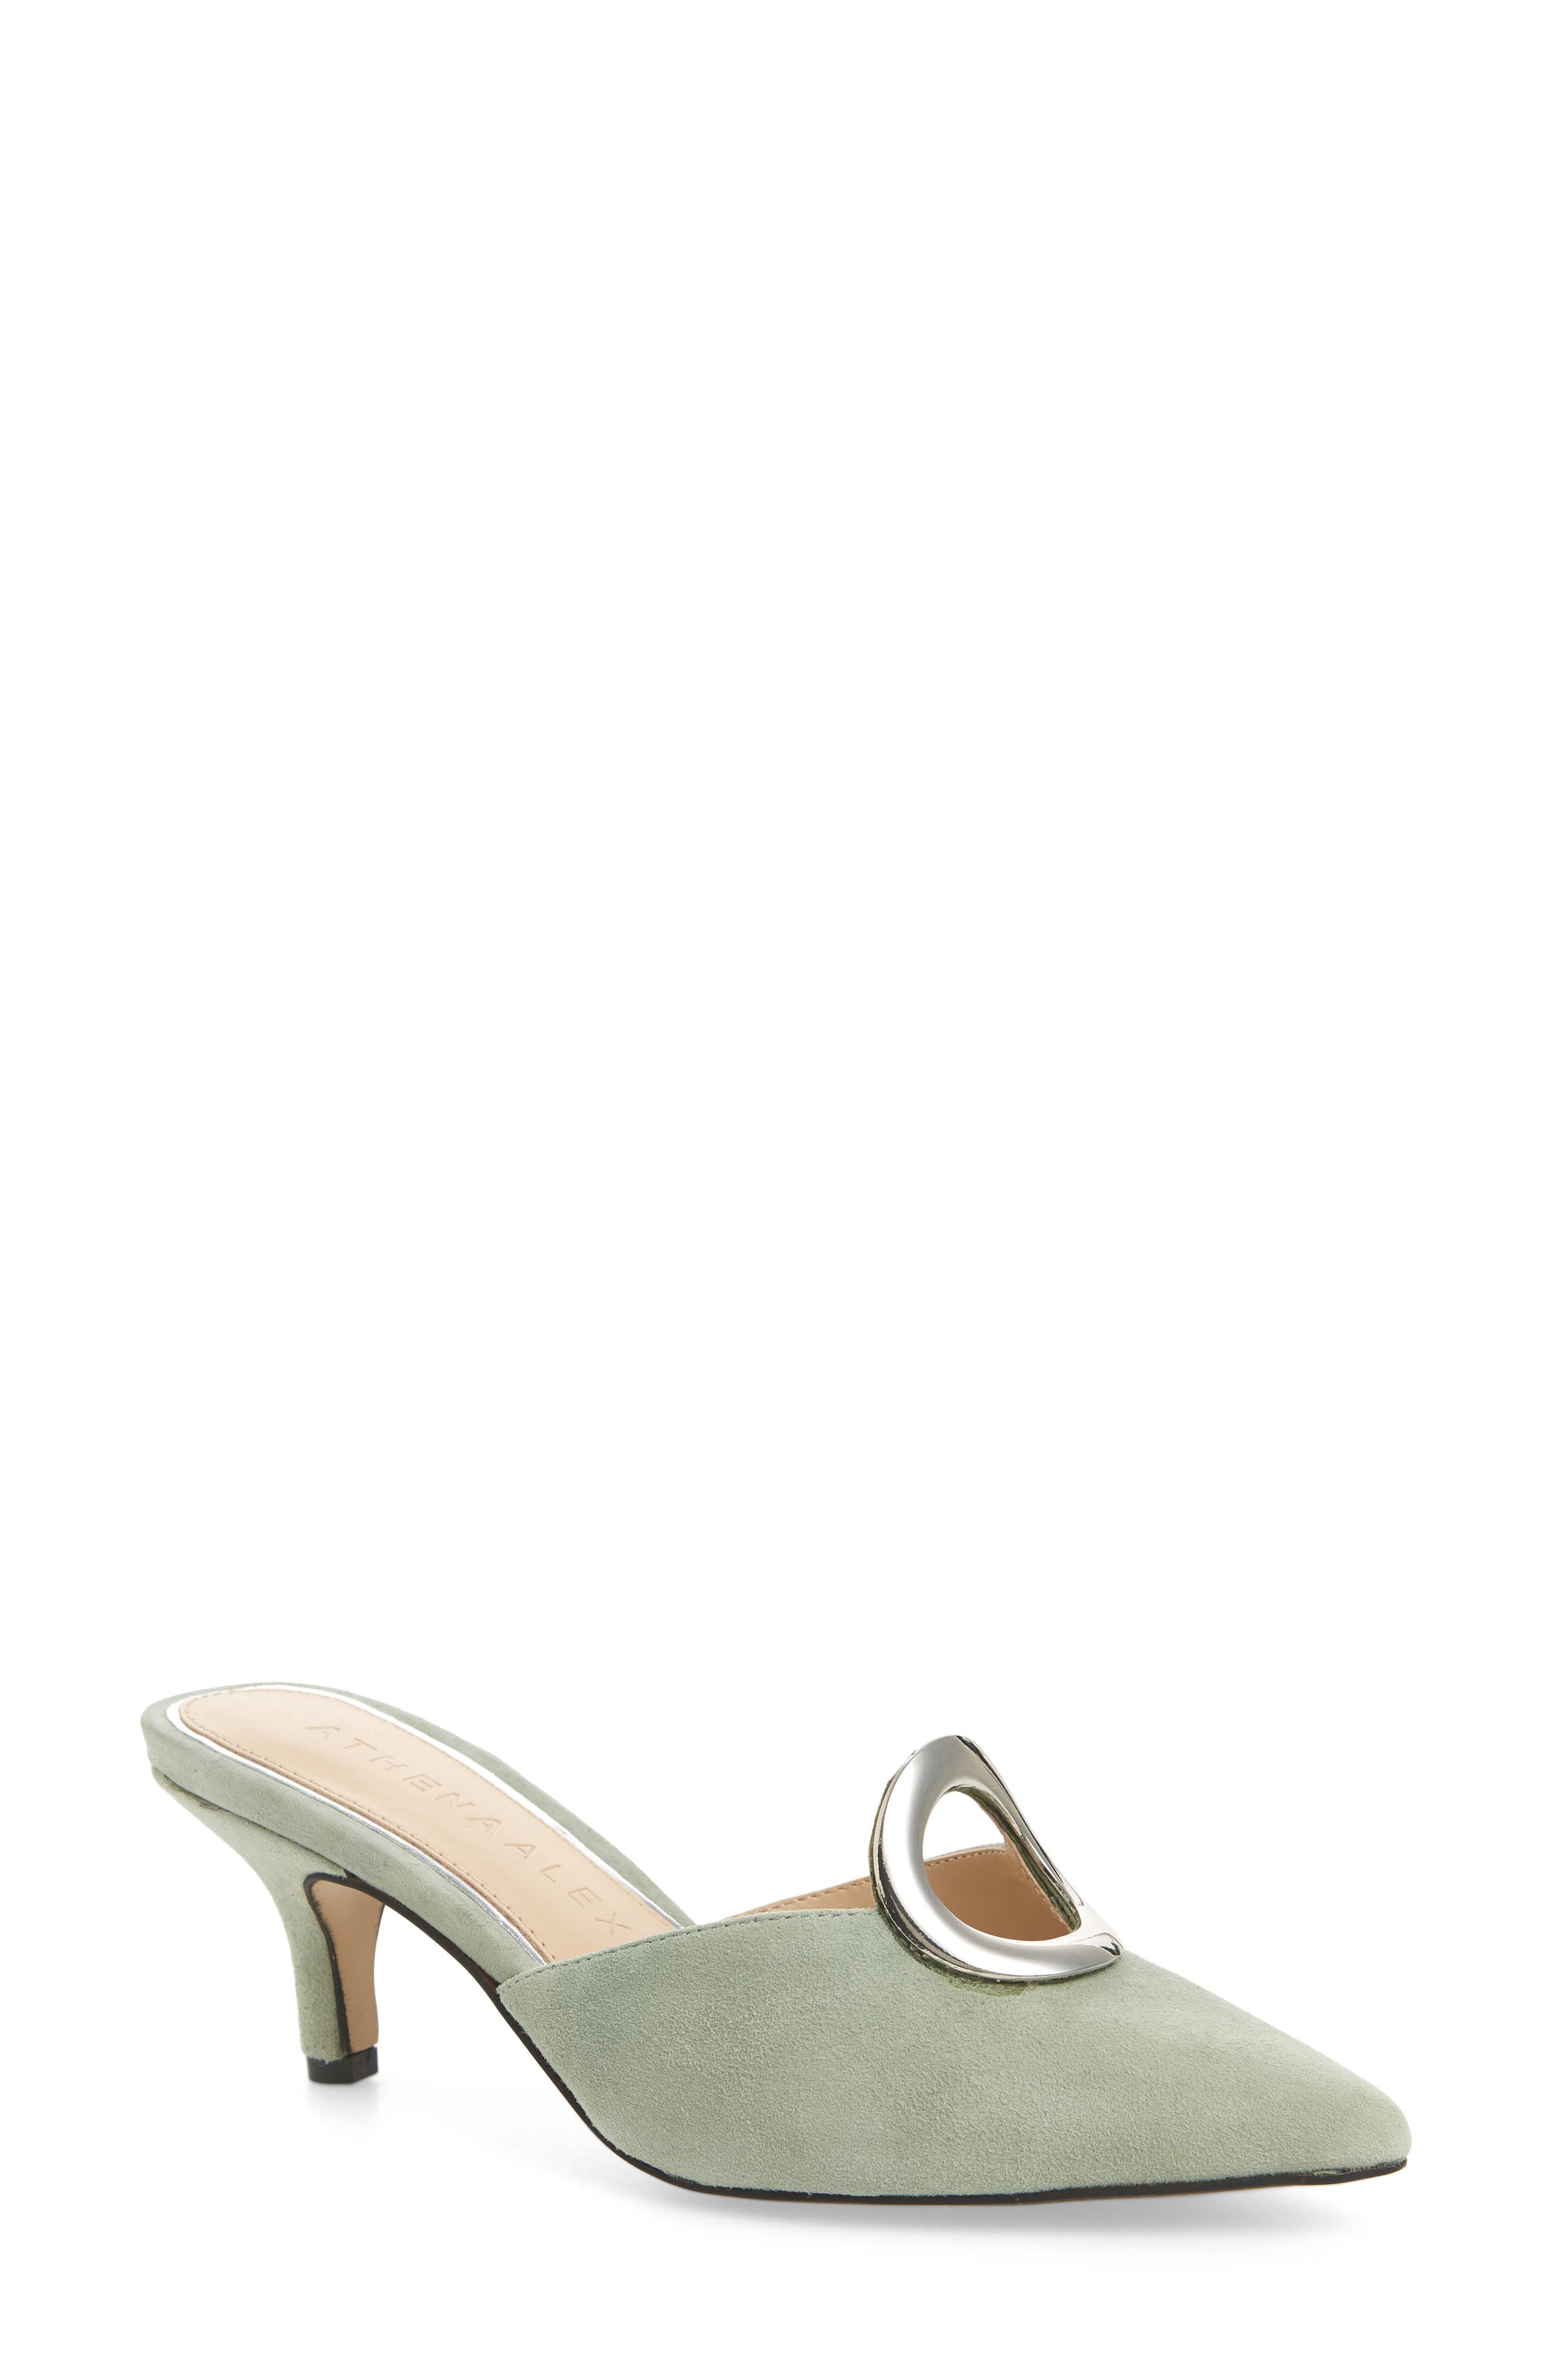 ATHENA ALEXANDER Pointy Toe Mule, Main, color, GREEN SUEDE